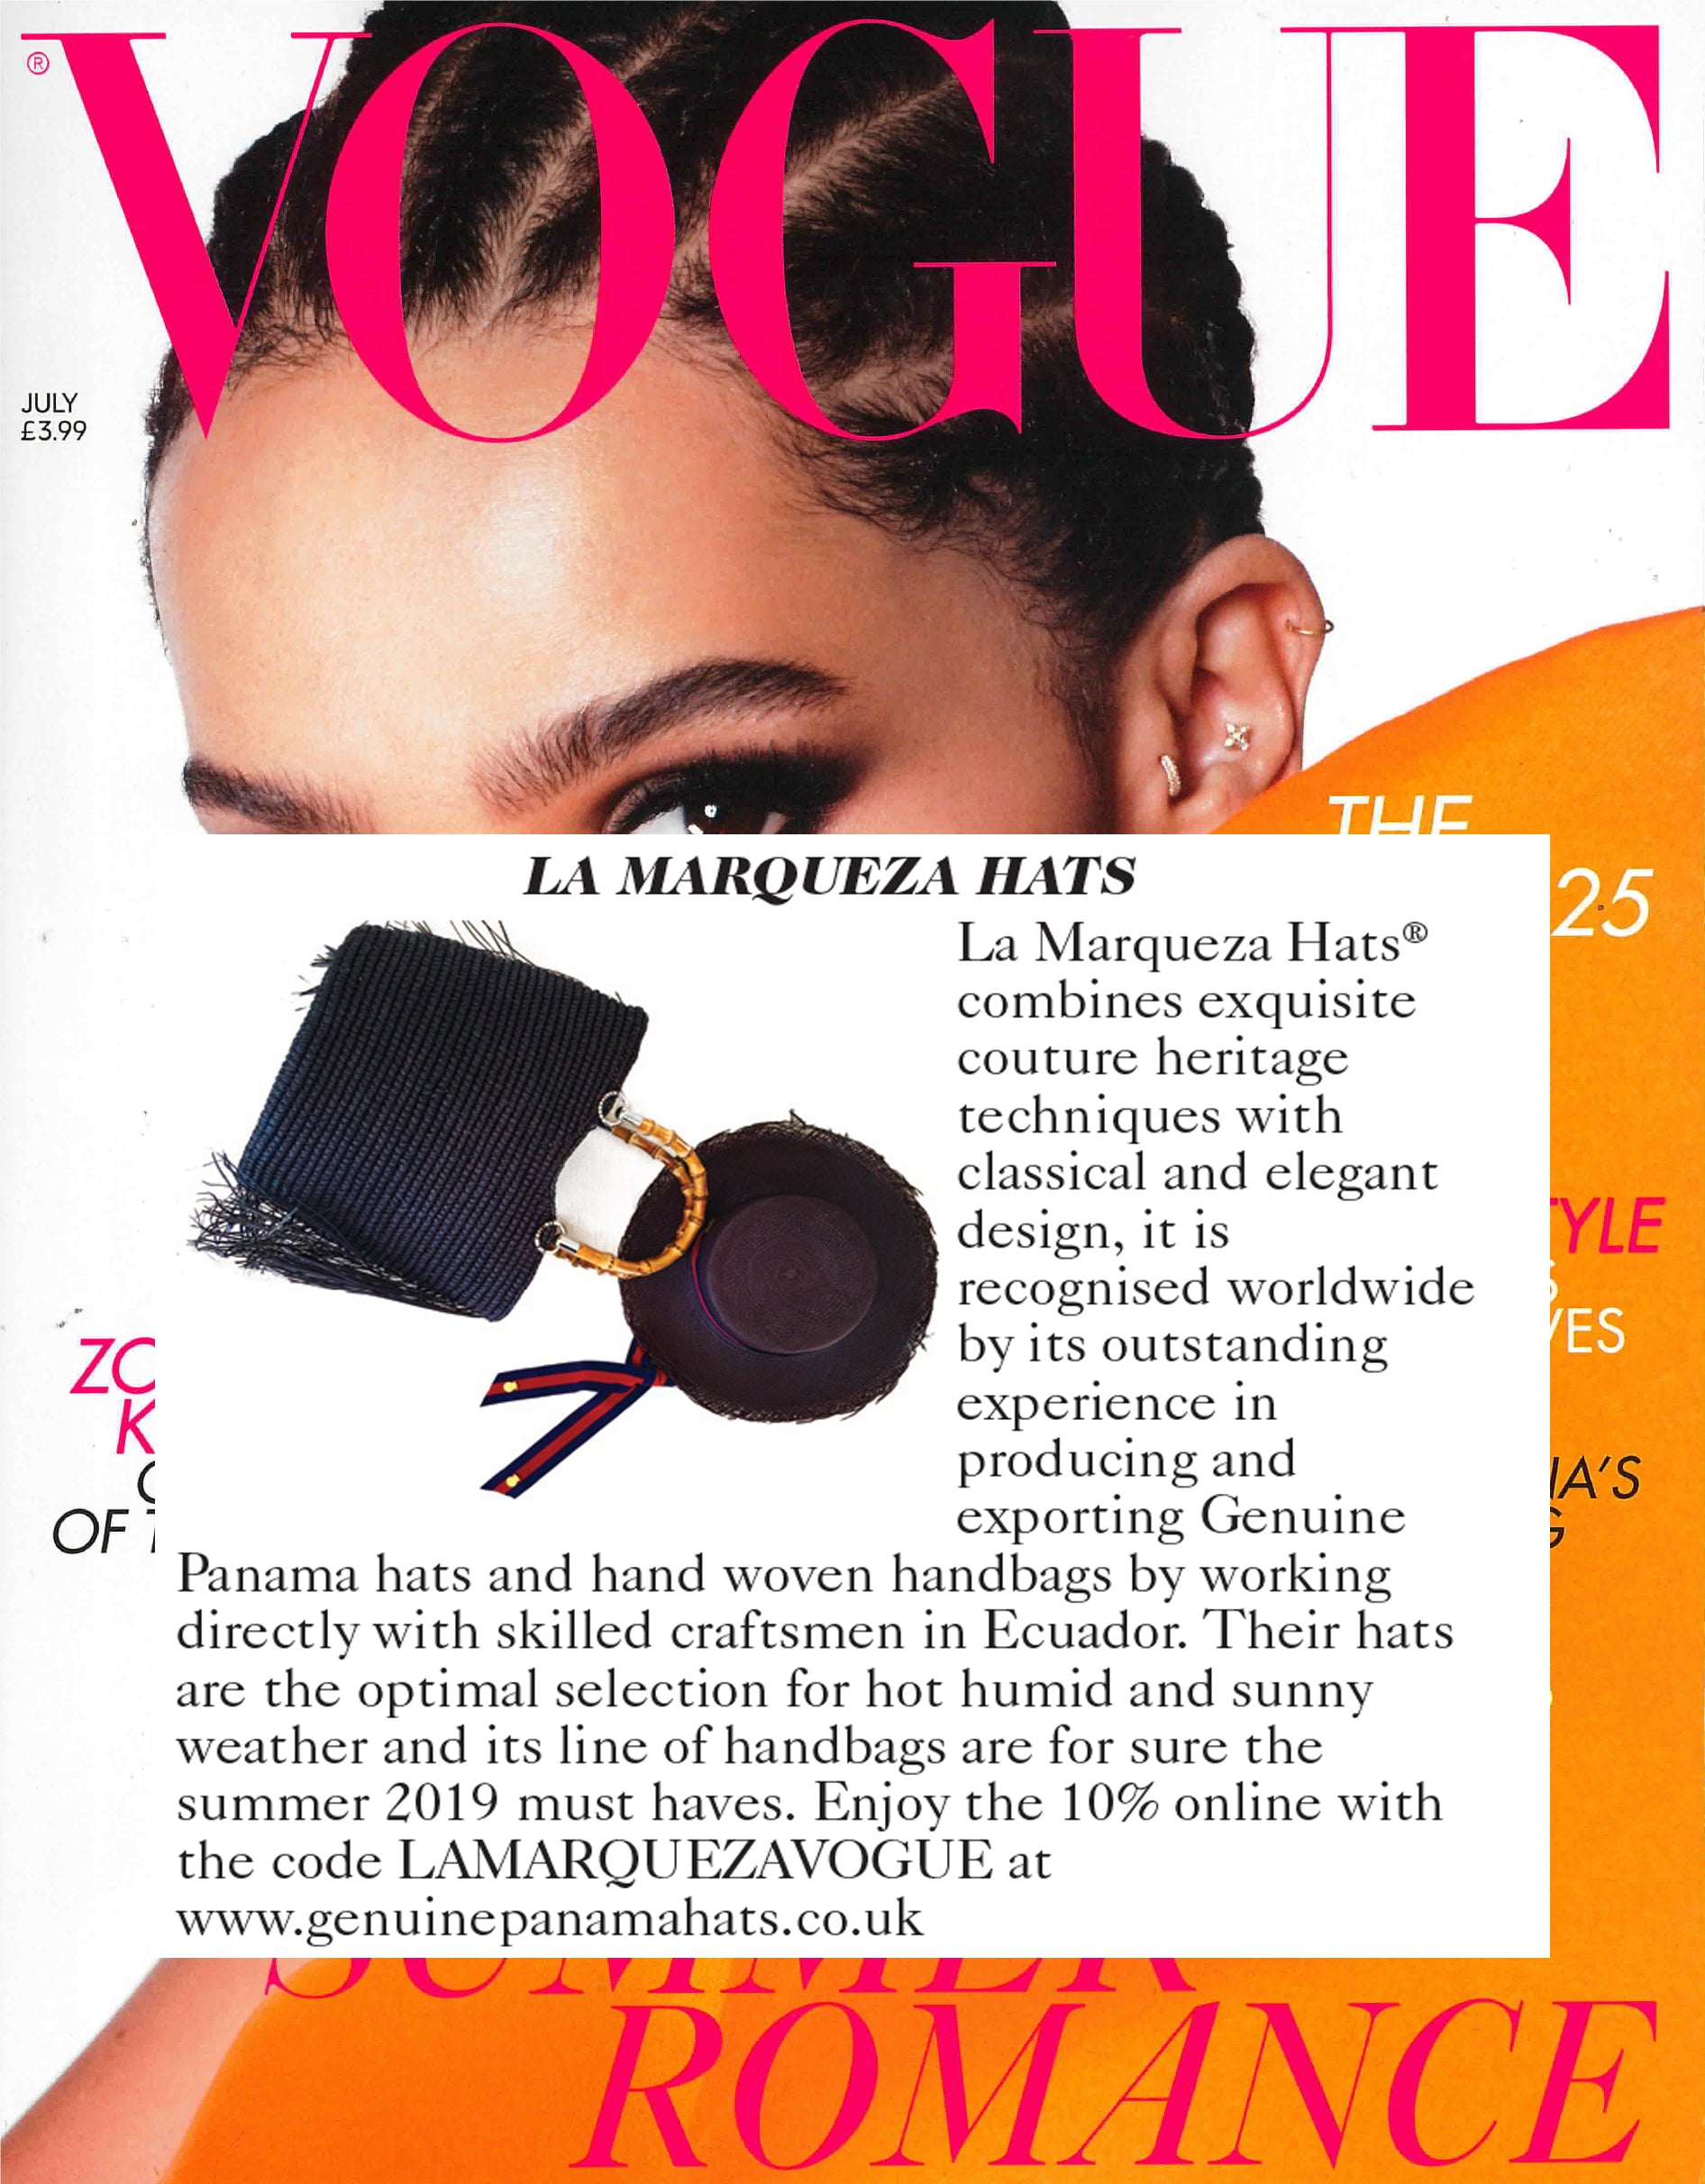 Best Packable Panama Hats in UK Vogue featured